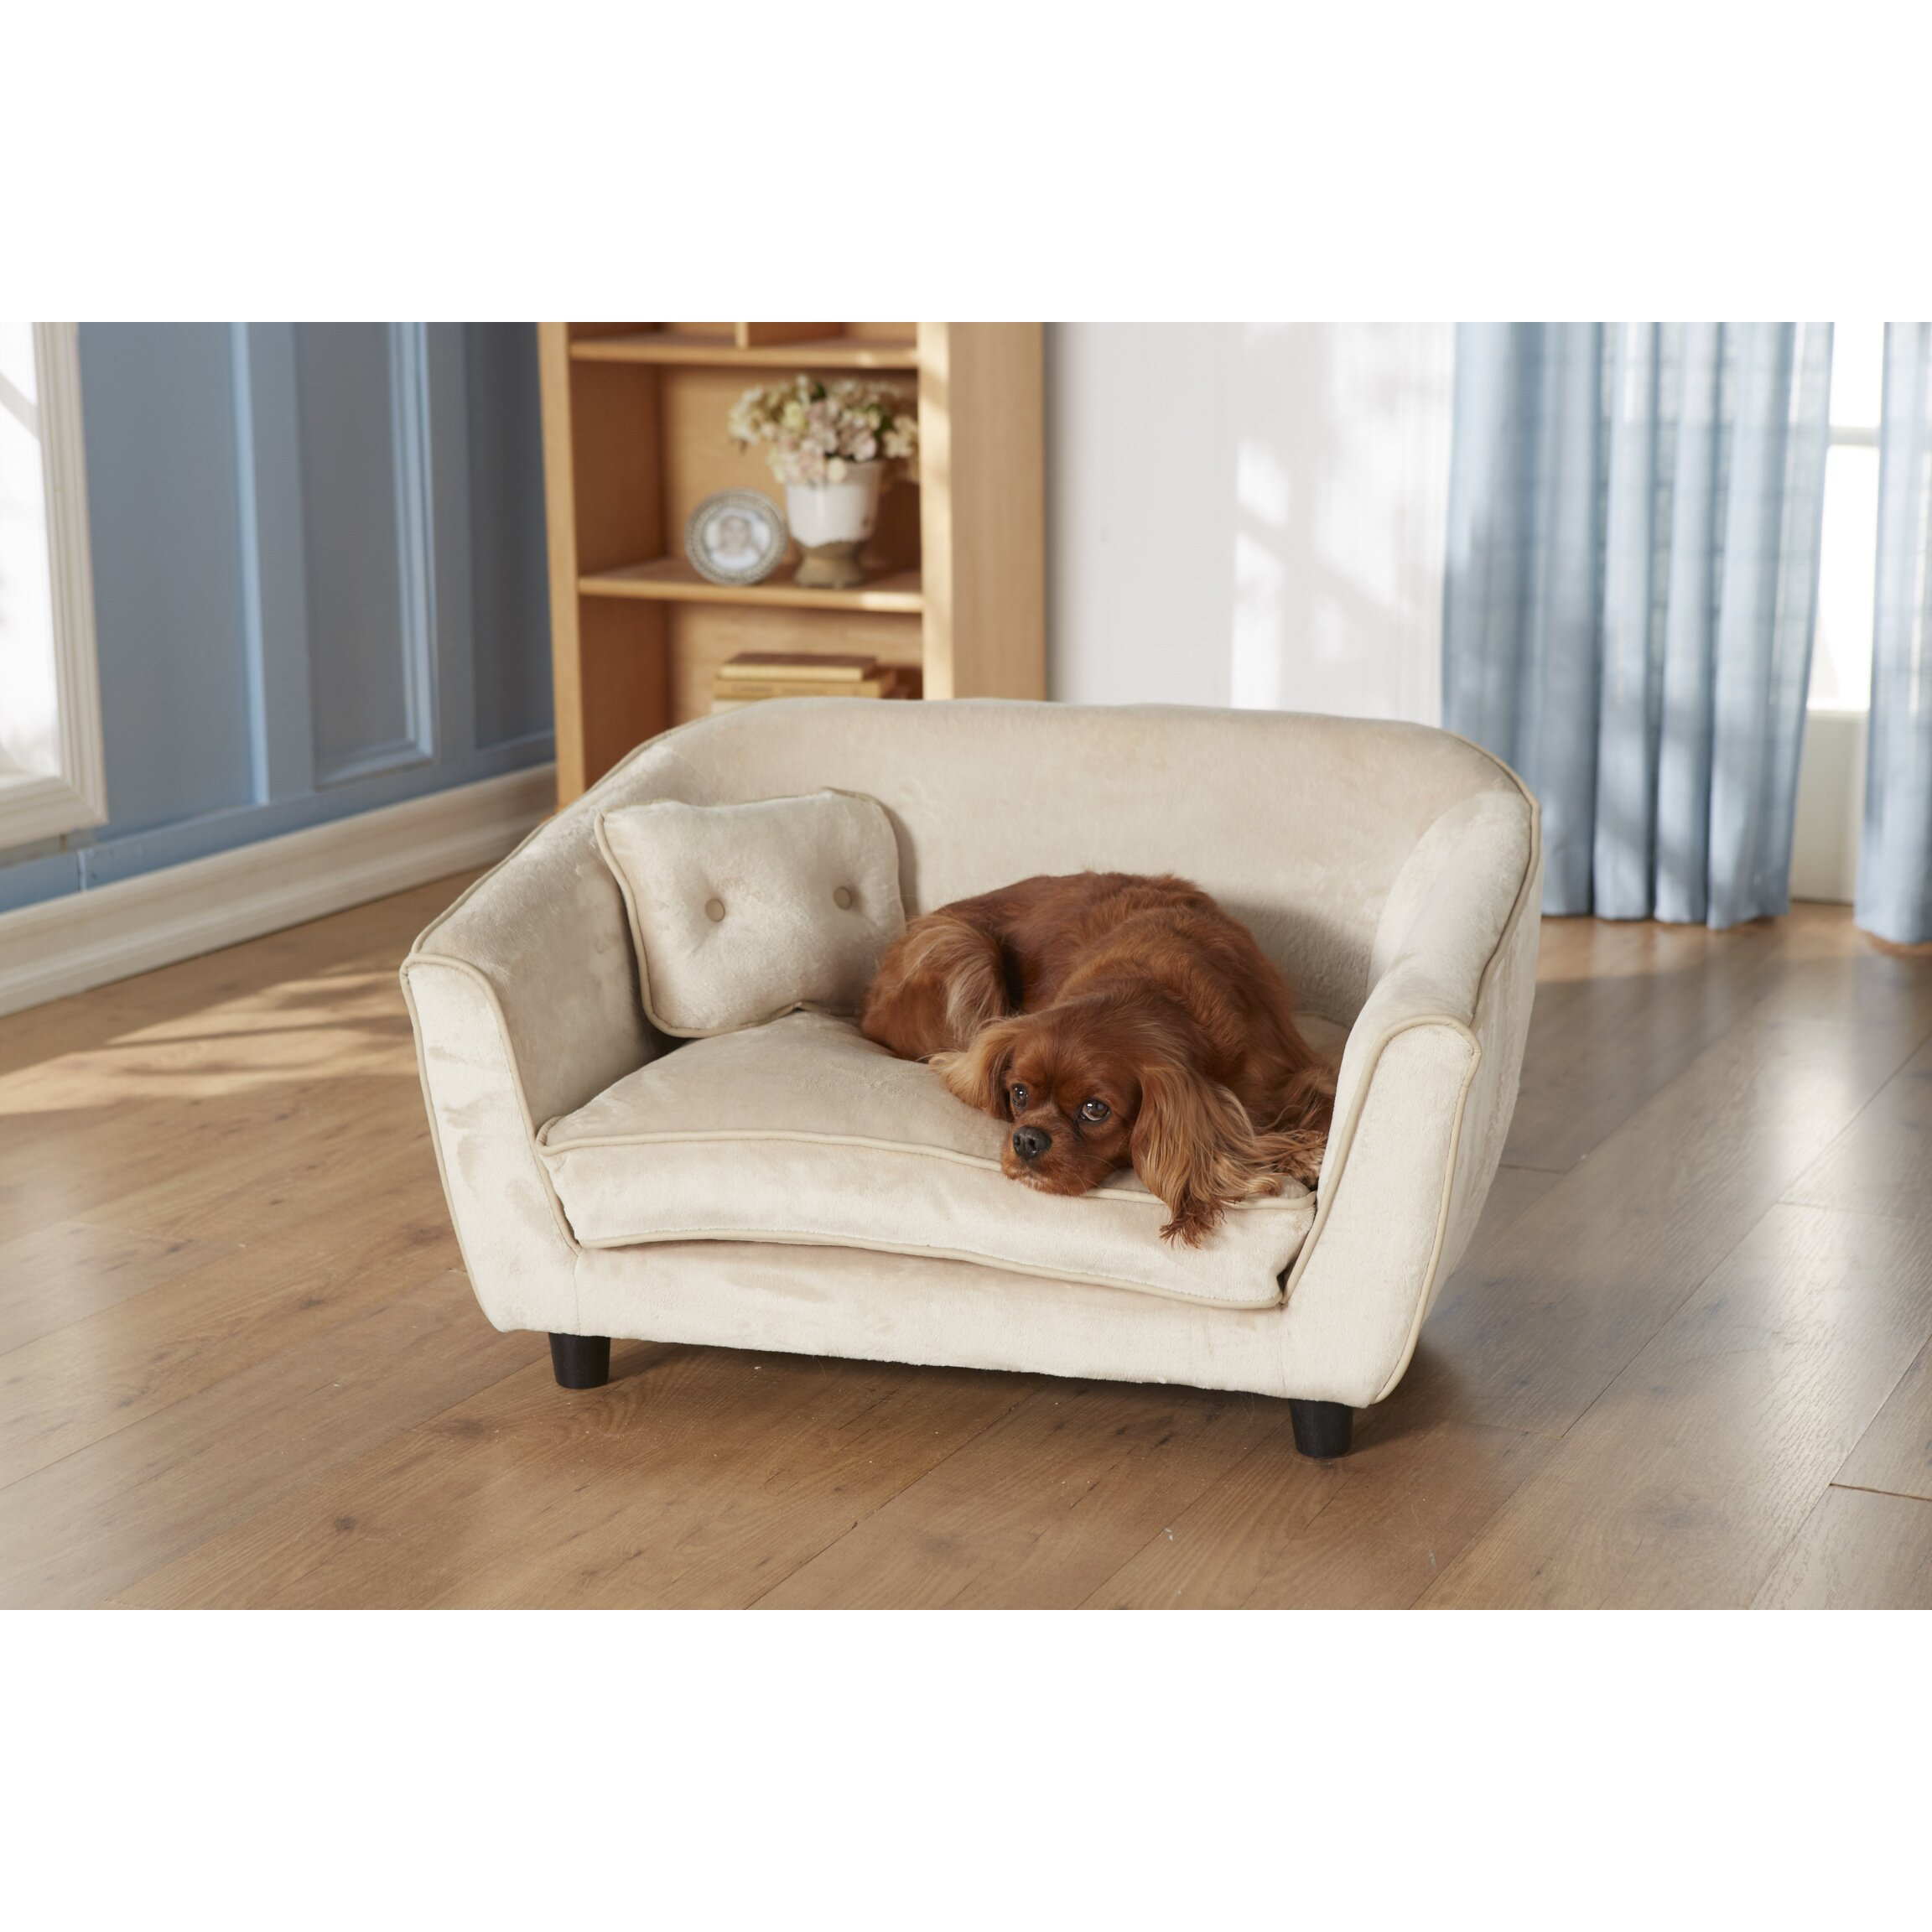 Enchanted Home Pet Astro Sofa Dog Bed Reviews Wayfair